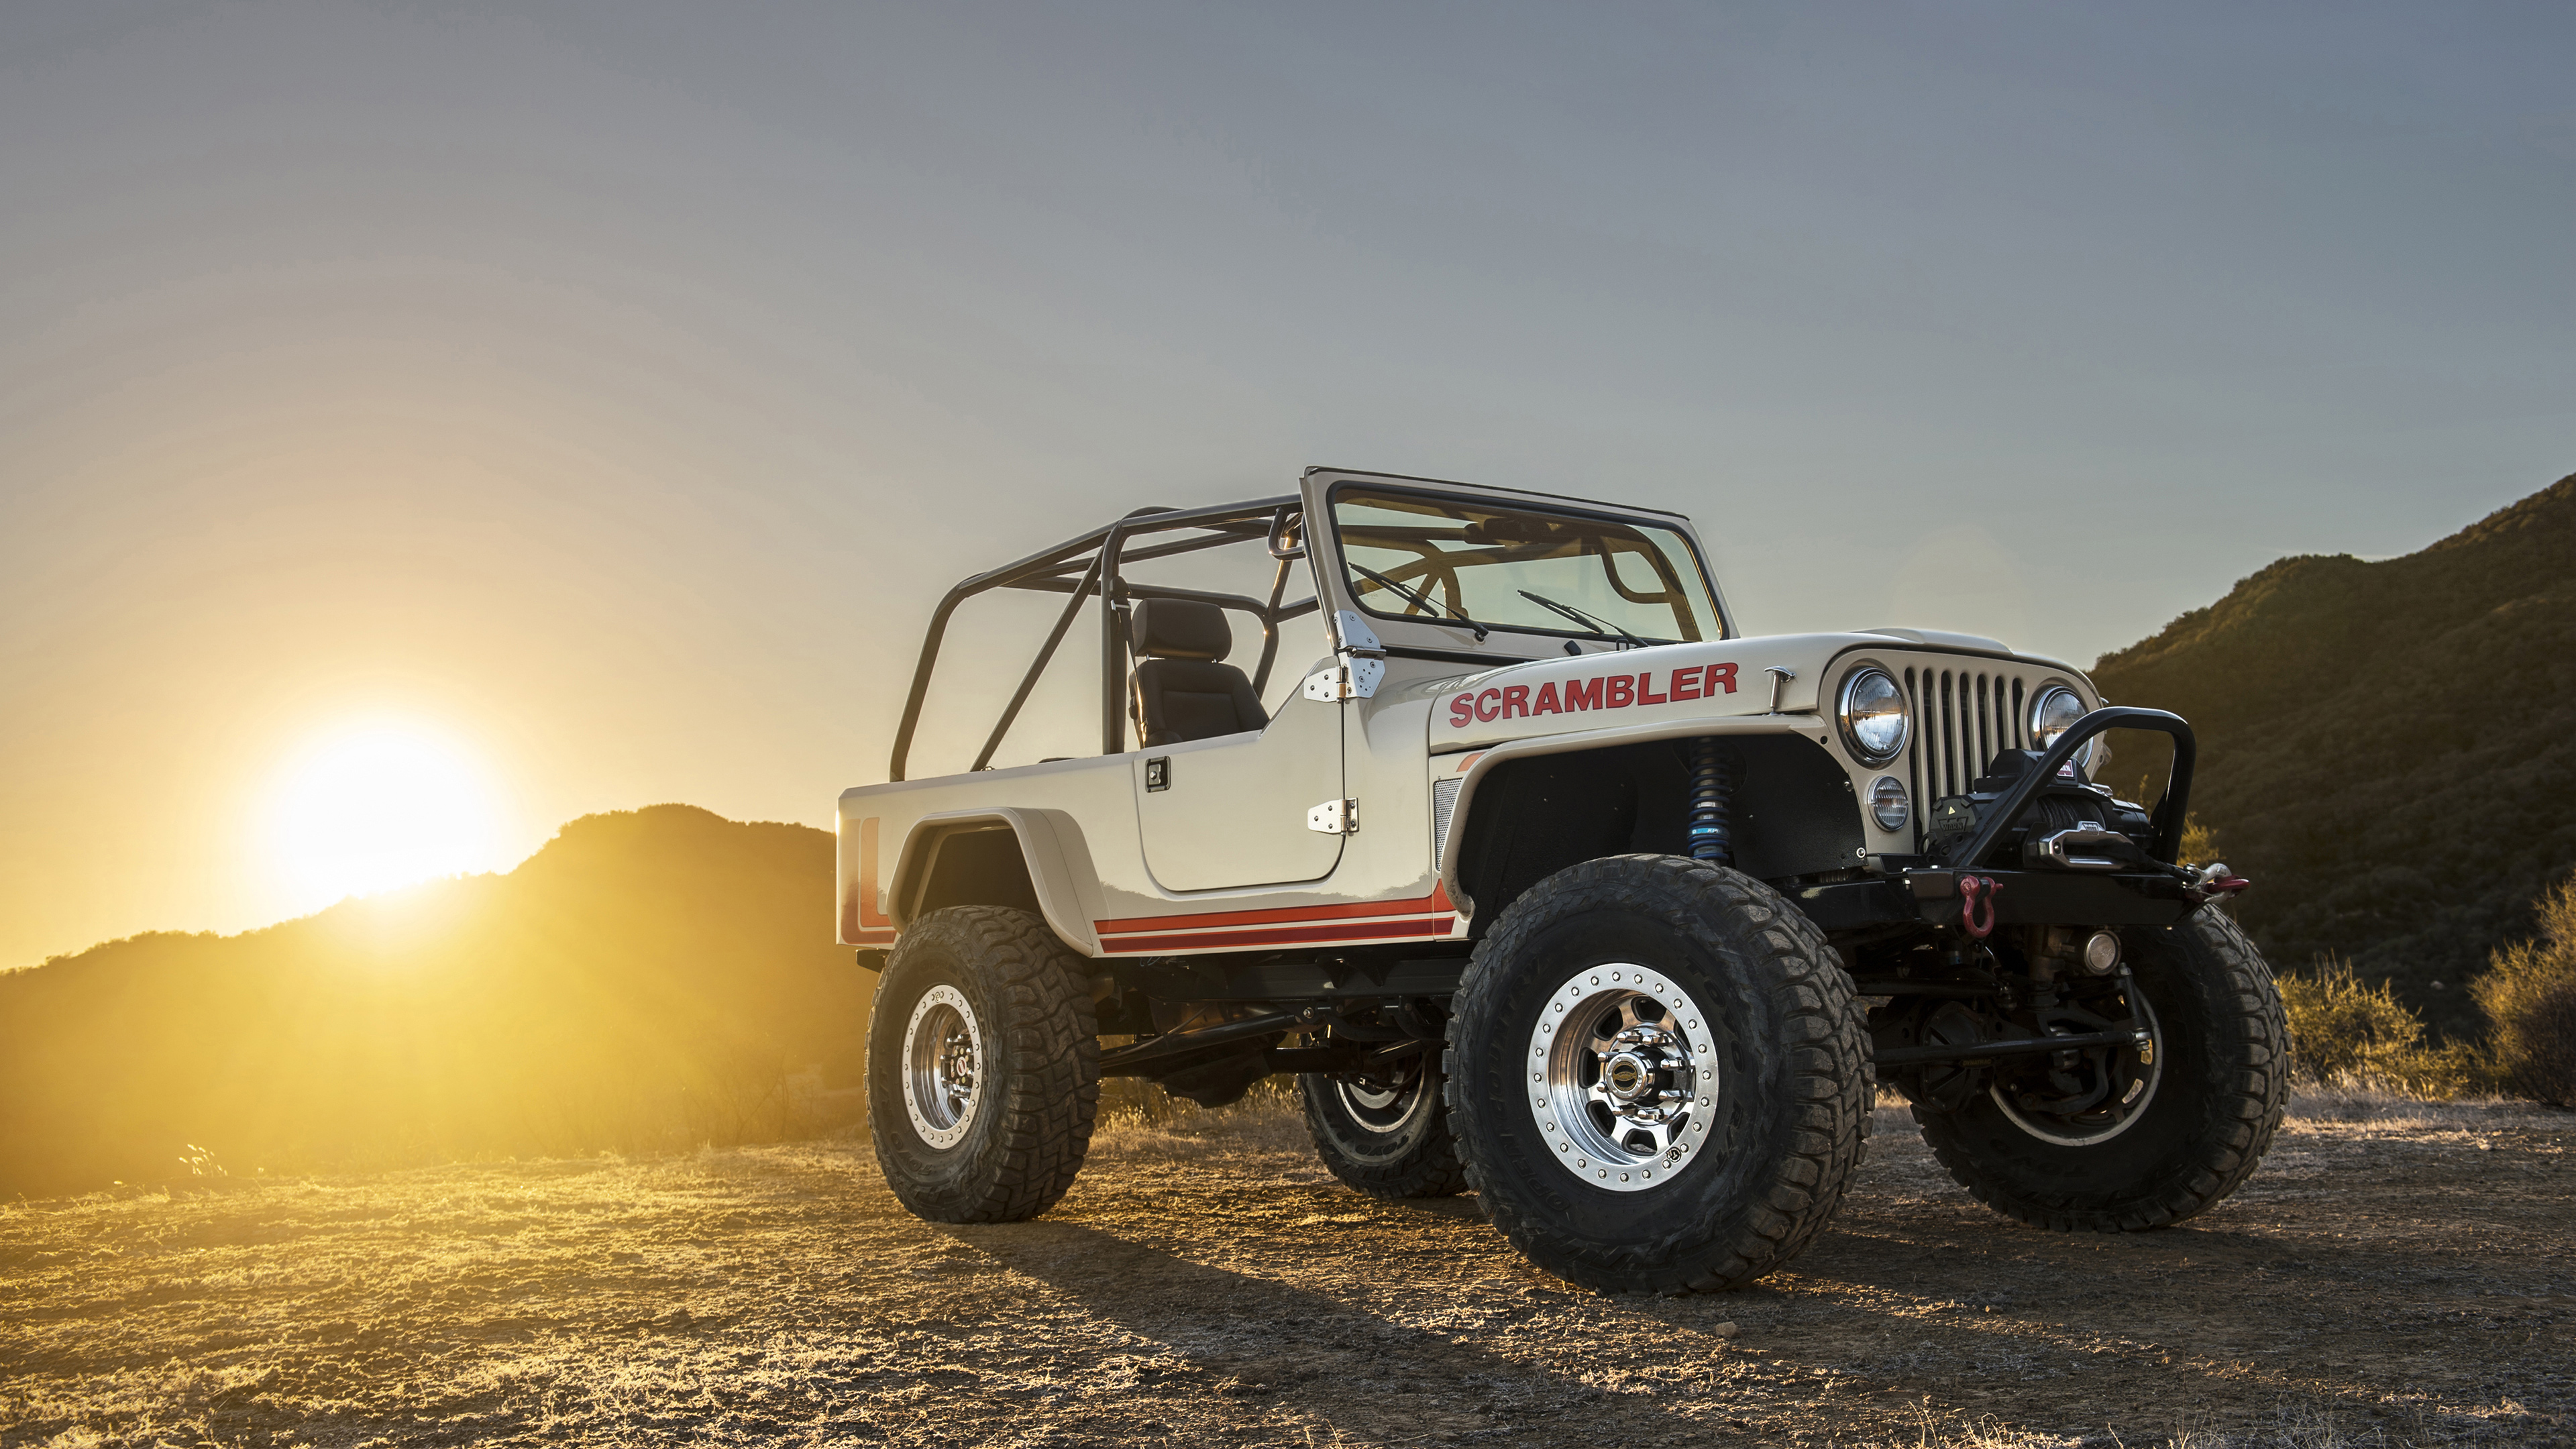 Jeep Cj8 Scrambler Wallpaper Hd Car Wallpapers Id 6787